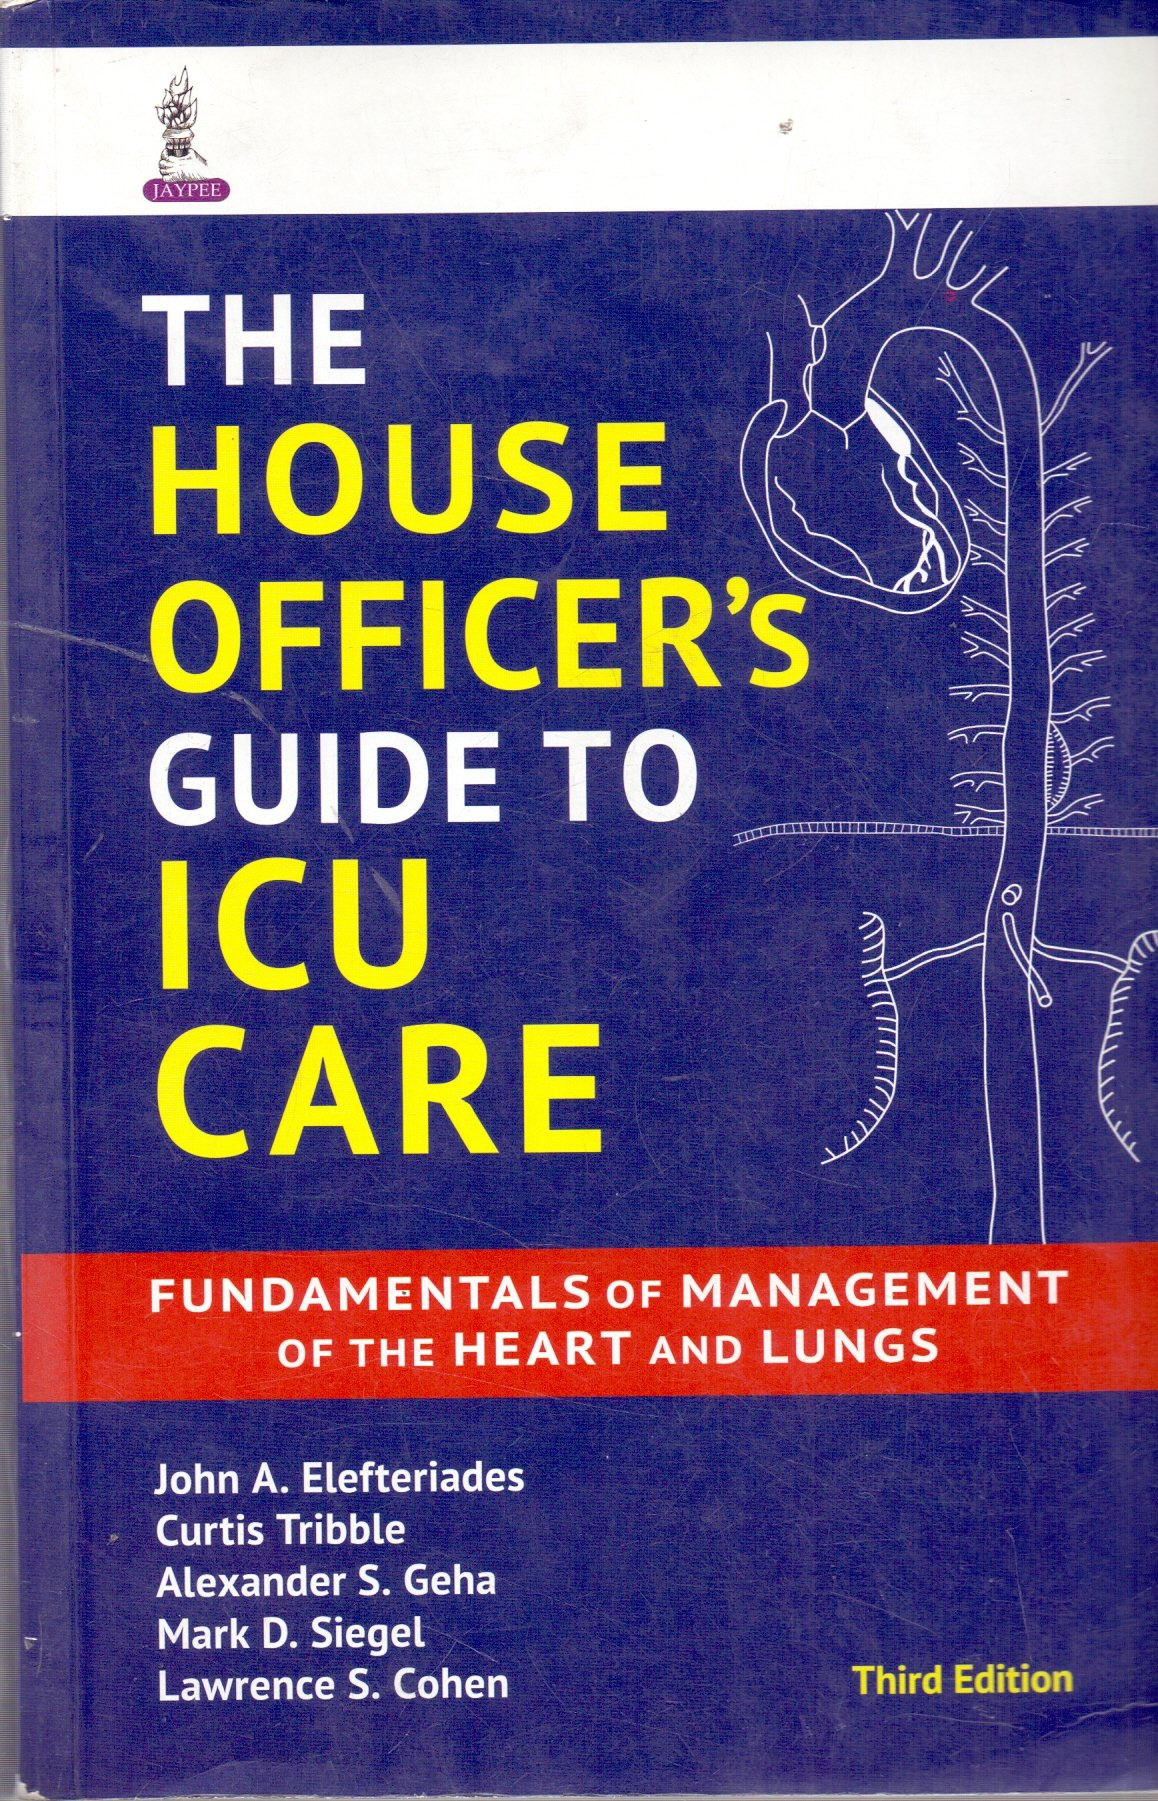 THE HOUSE OFFICER'S GUIDE TO ICU CARE FUNDAMENTALS OF